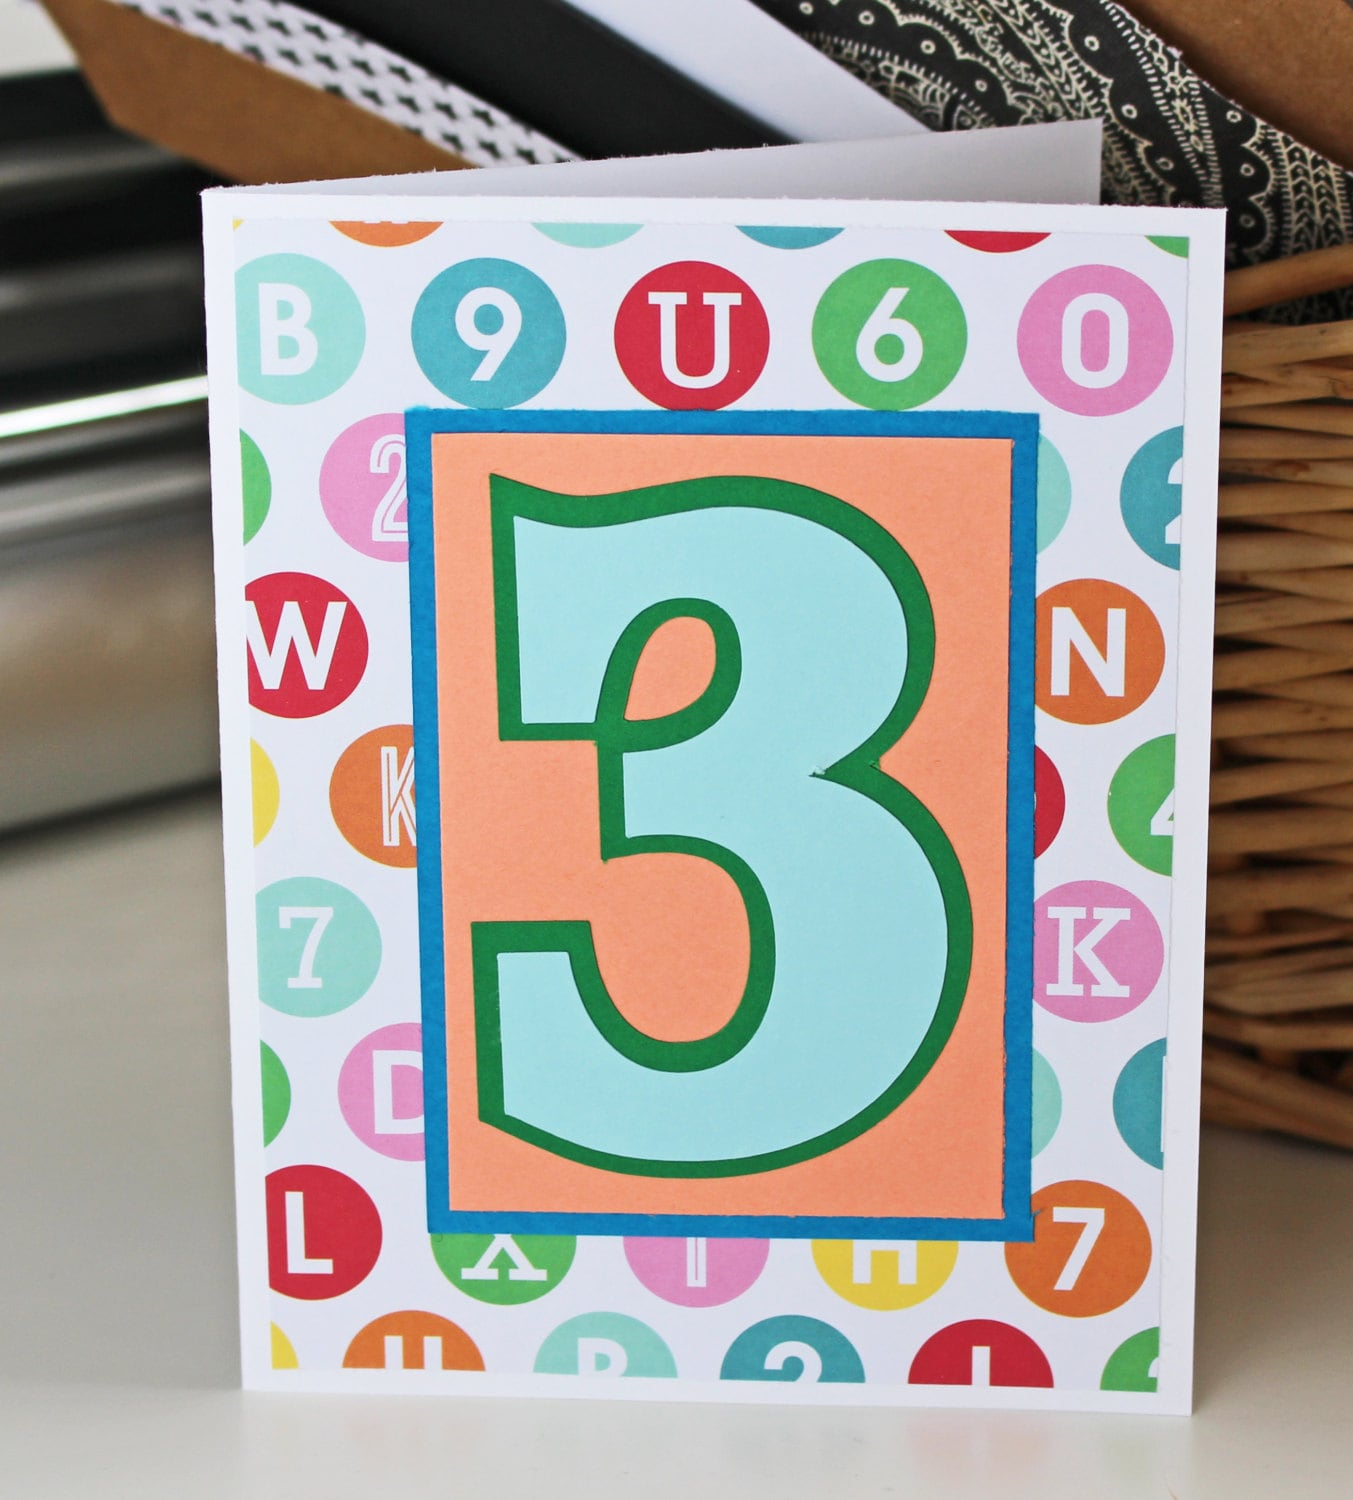 Custom Birthday Number Card Handmade Greeting 1st 2nd 3rd 4th 5th Kids Toddler Child Baby Boy Or Girl Party Theme